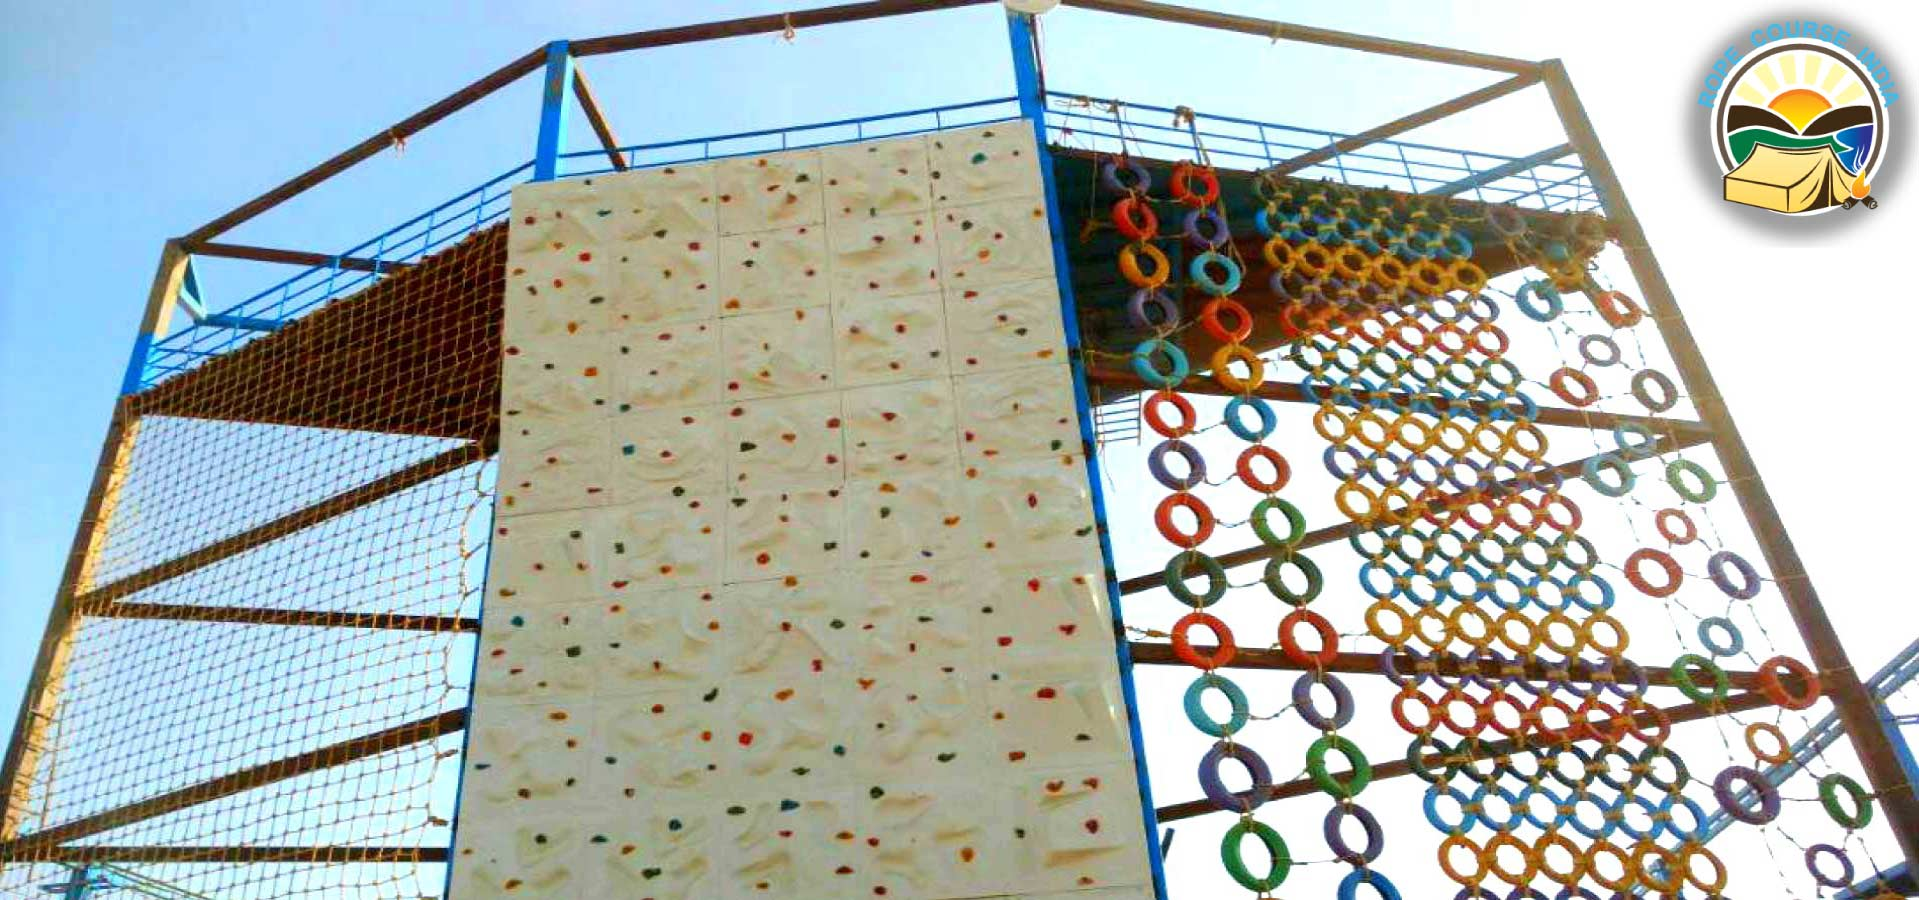 Climbing Wall Design Company : Rock climbing wall setup cost in india